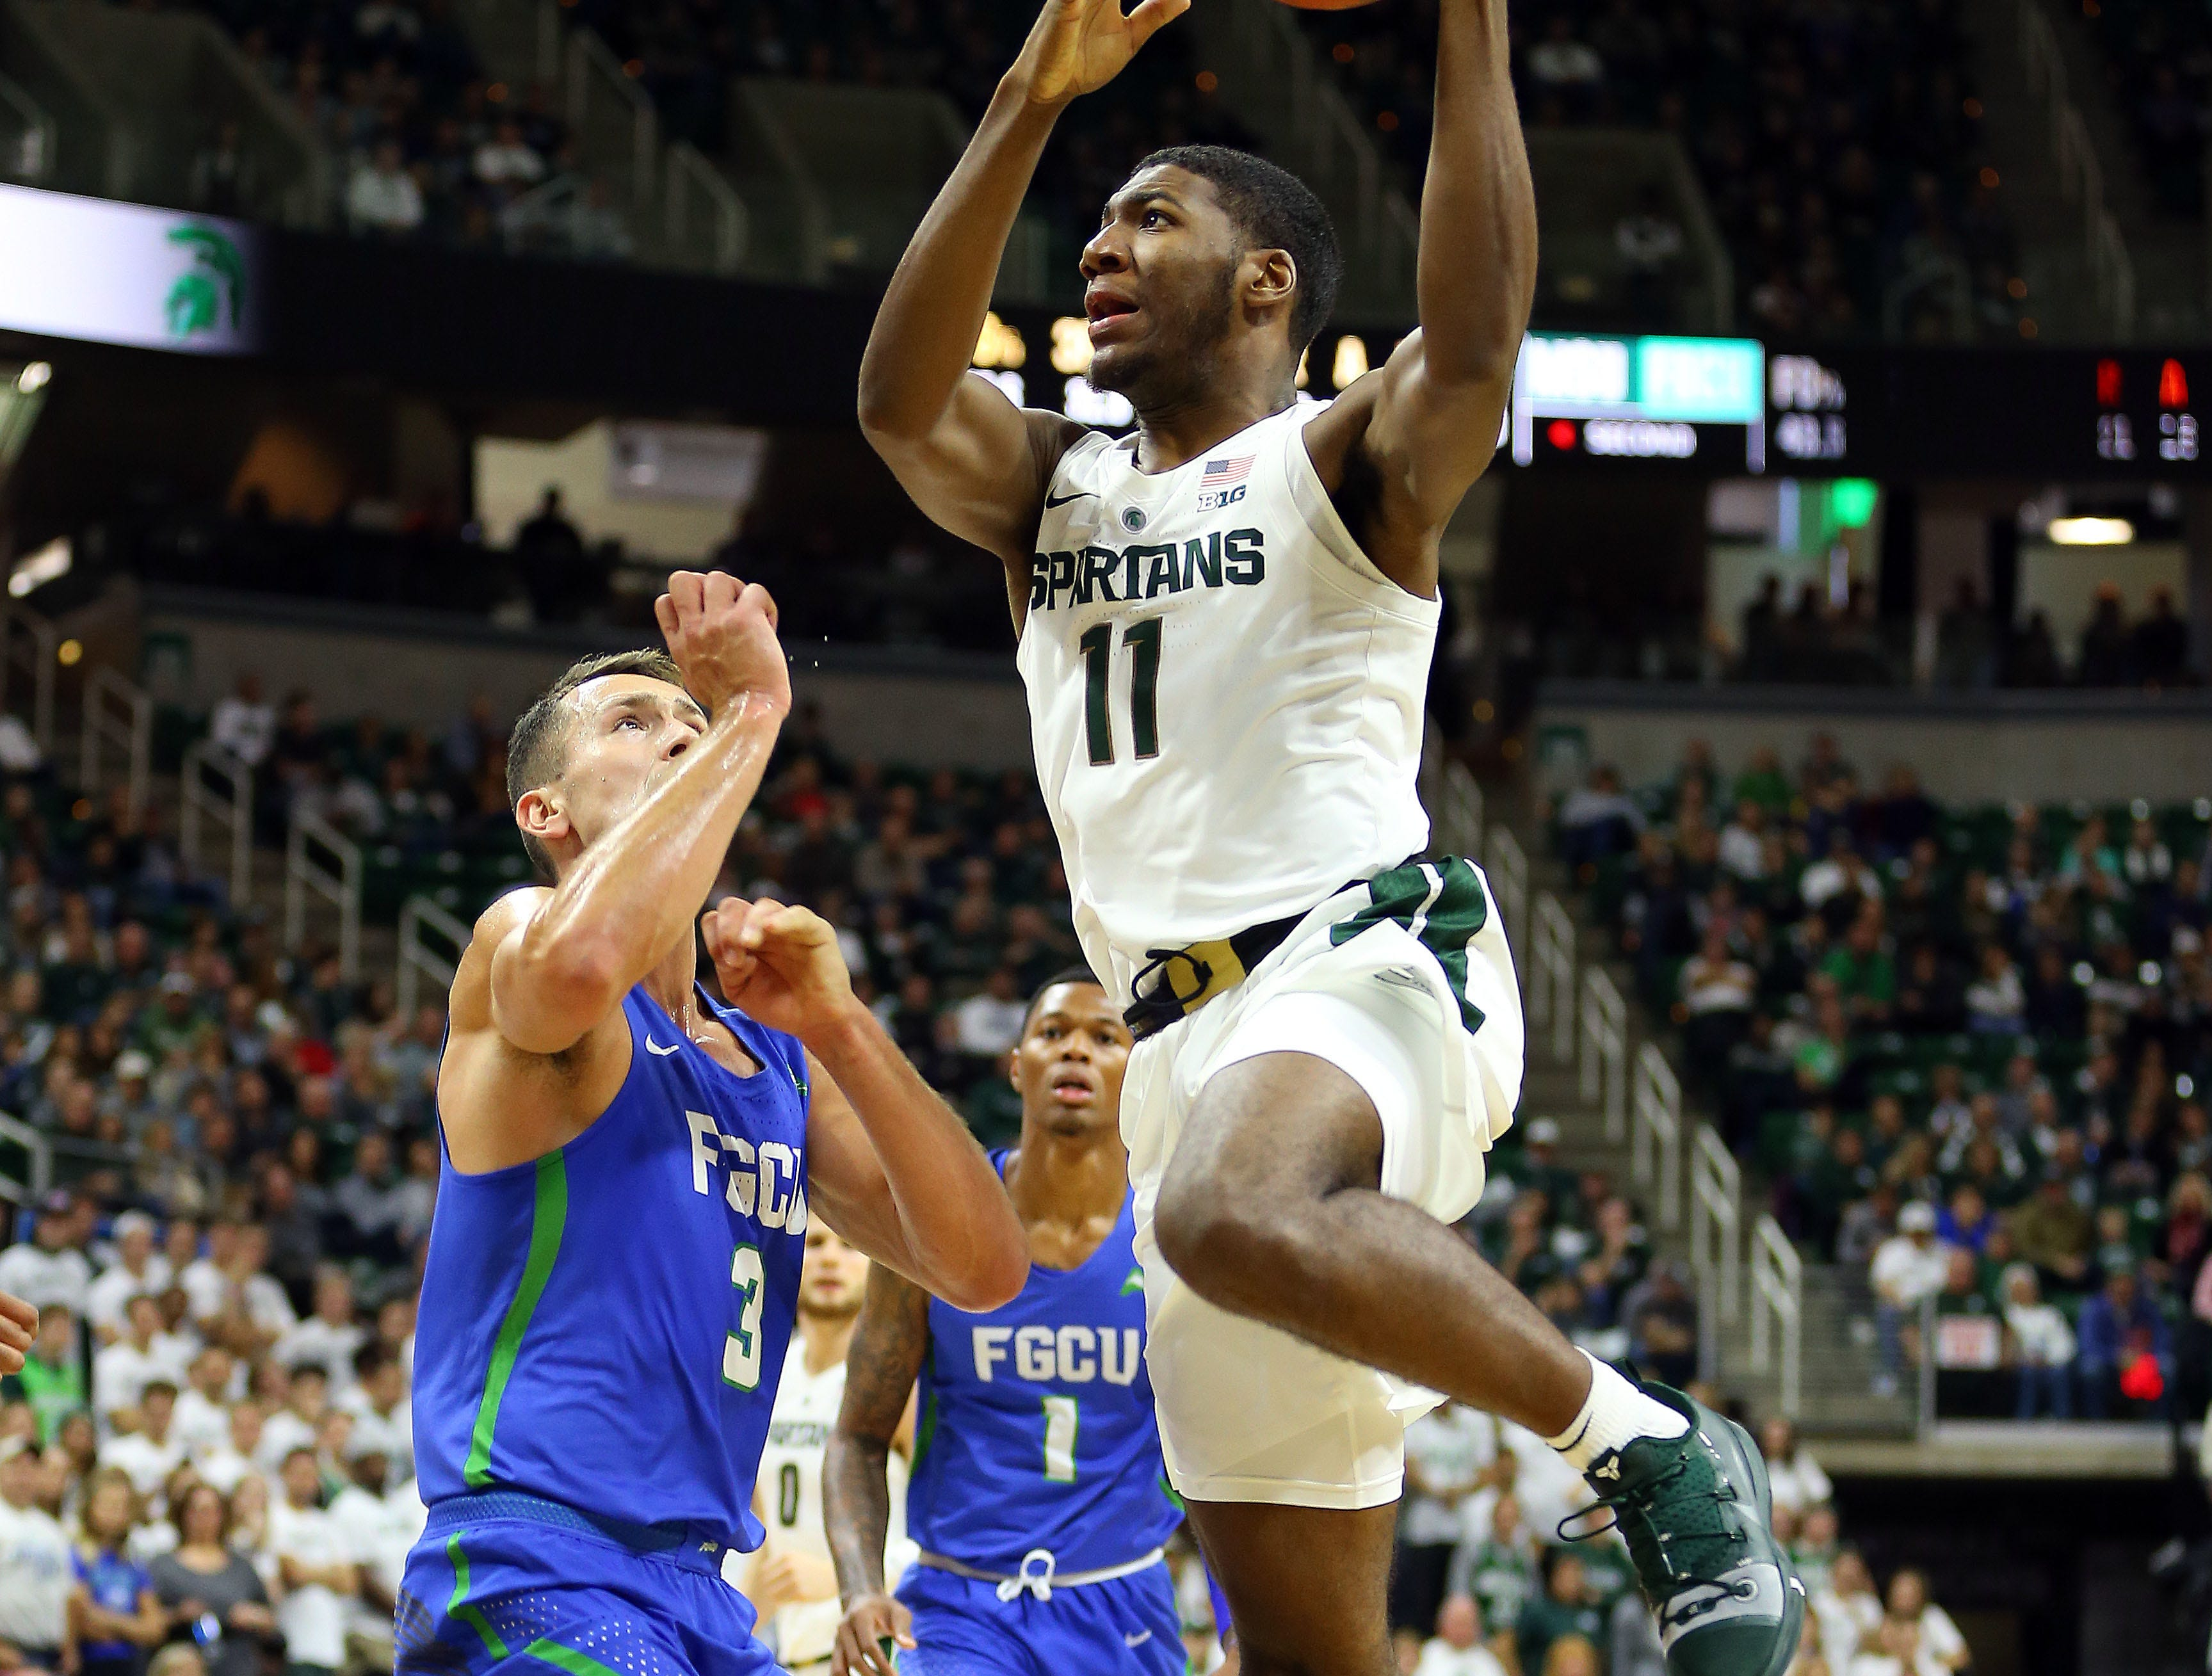 Nov 11, 2018; East Lansing, MI, USA; Michigan State Spartans forward Aaron Henry (11) drives to the basket over Florida Gulf Coast Eagles guard Christian Carlyle (3) during the second half of a game at the Breslin Center. Mandatory Credit: Mike Carter-USA TODAY Sports